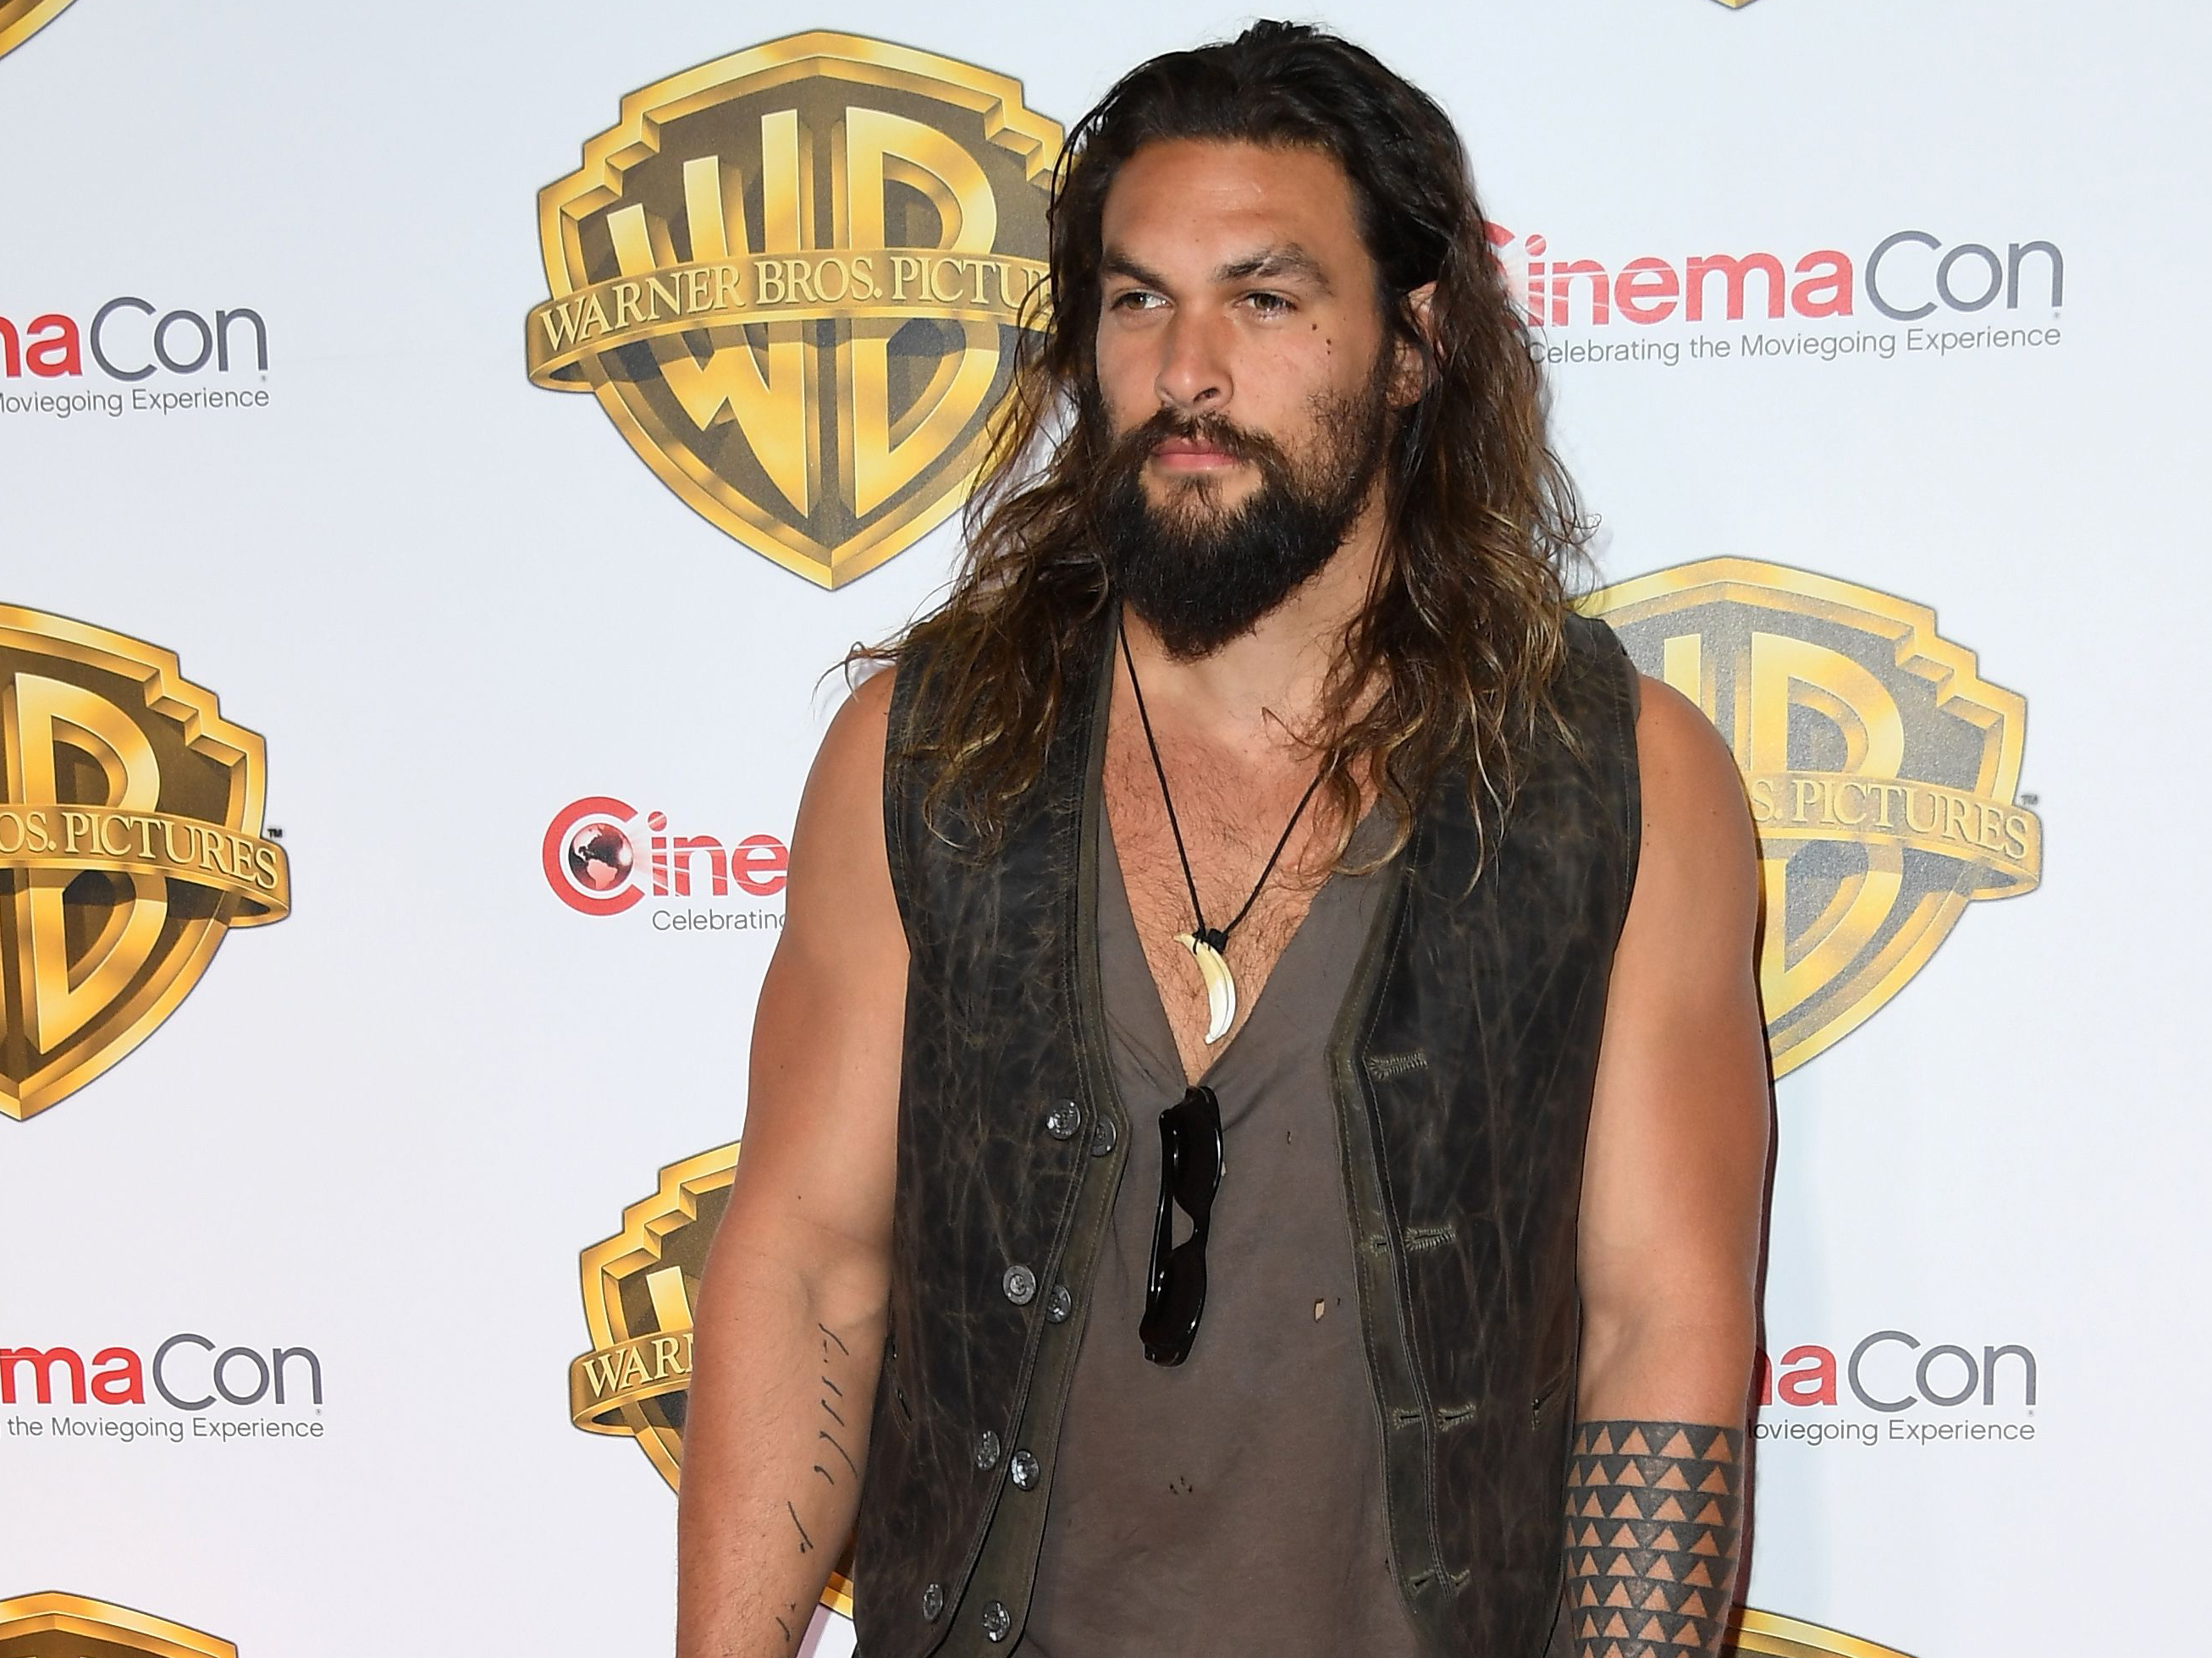 Actor Jason Momoa arrives at CinemaCon 2017 at The Colosseum at Caesars Palace during CinemaCon on March 29, 2017 in Las Vegas.